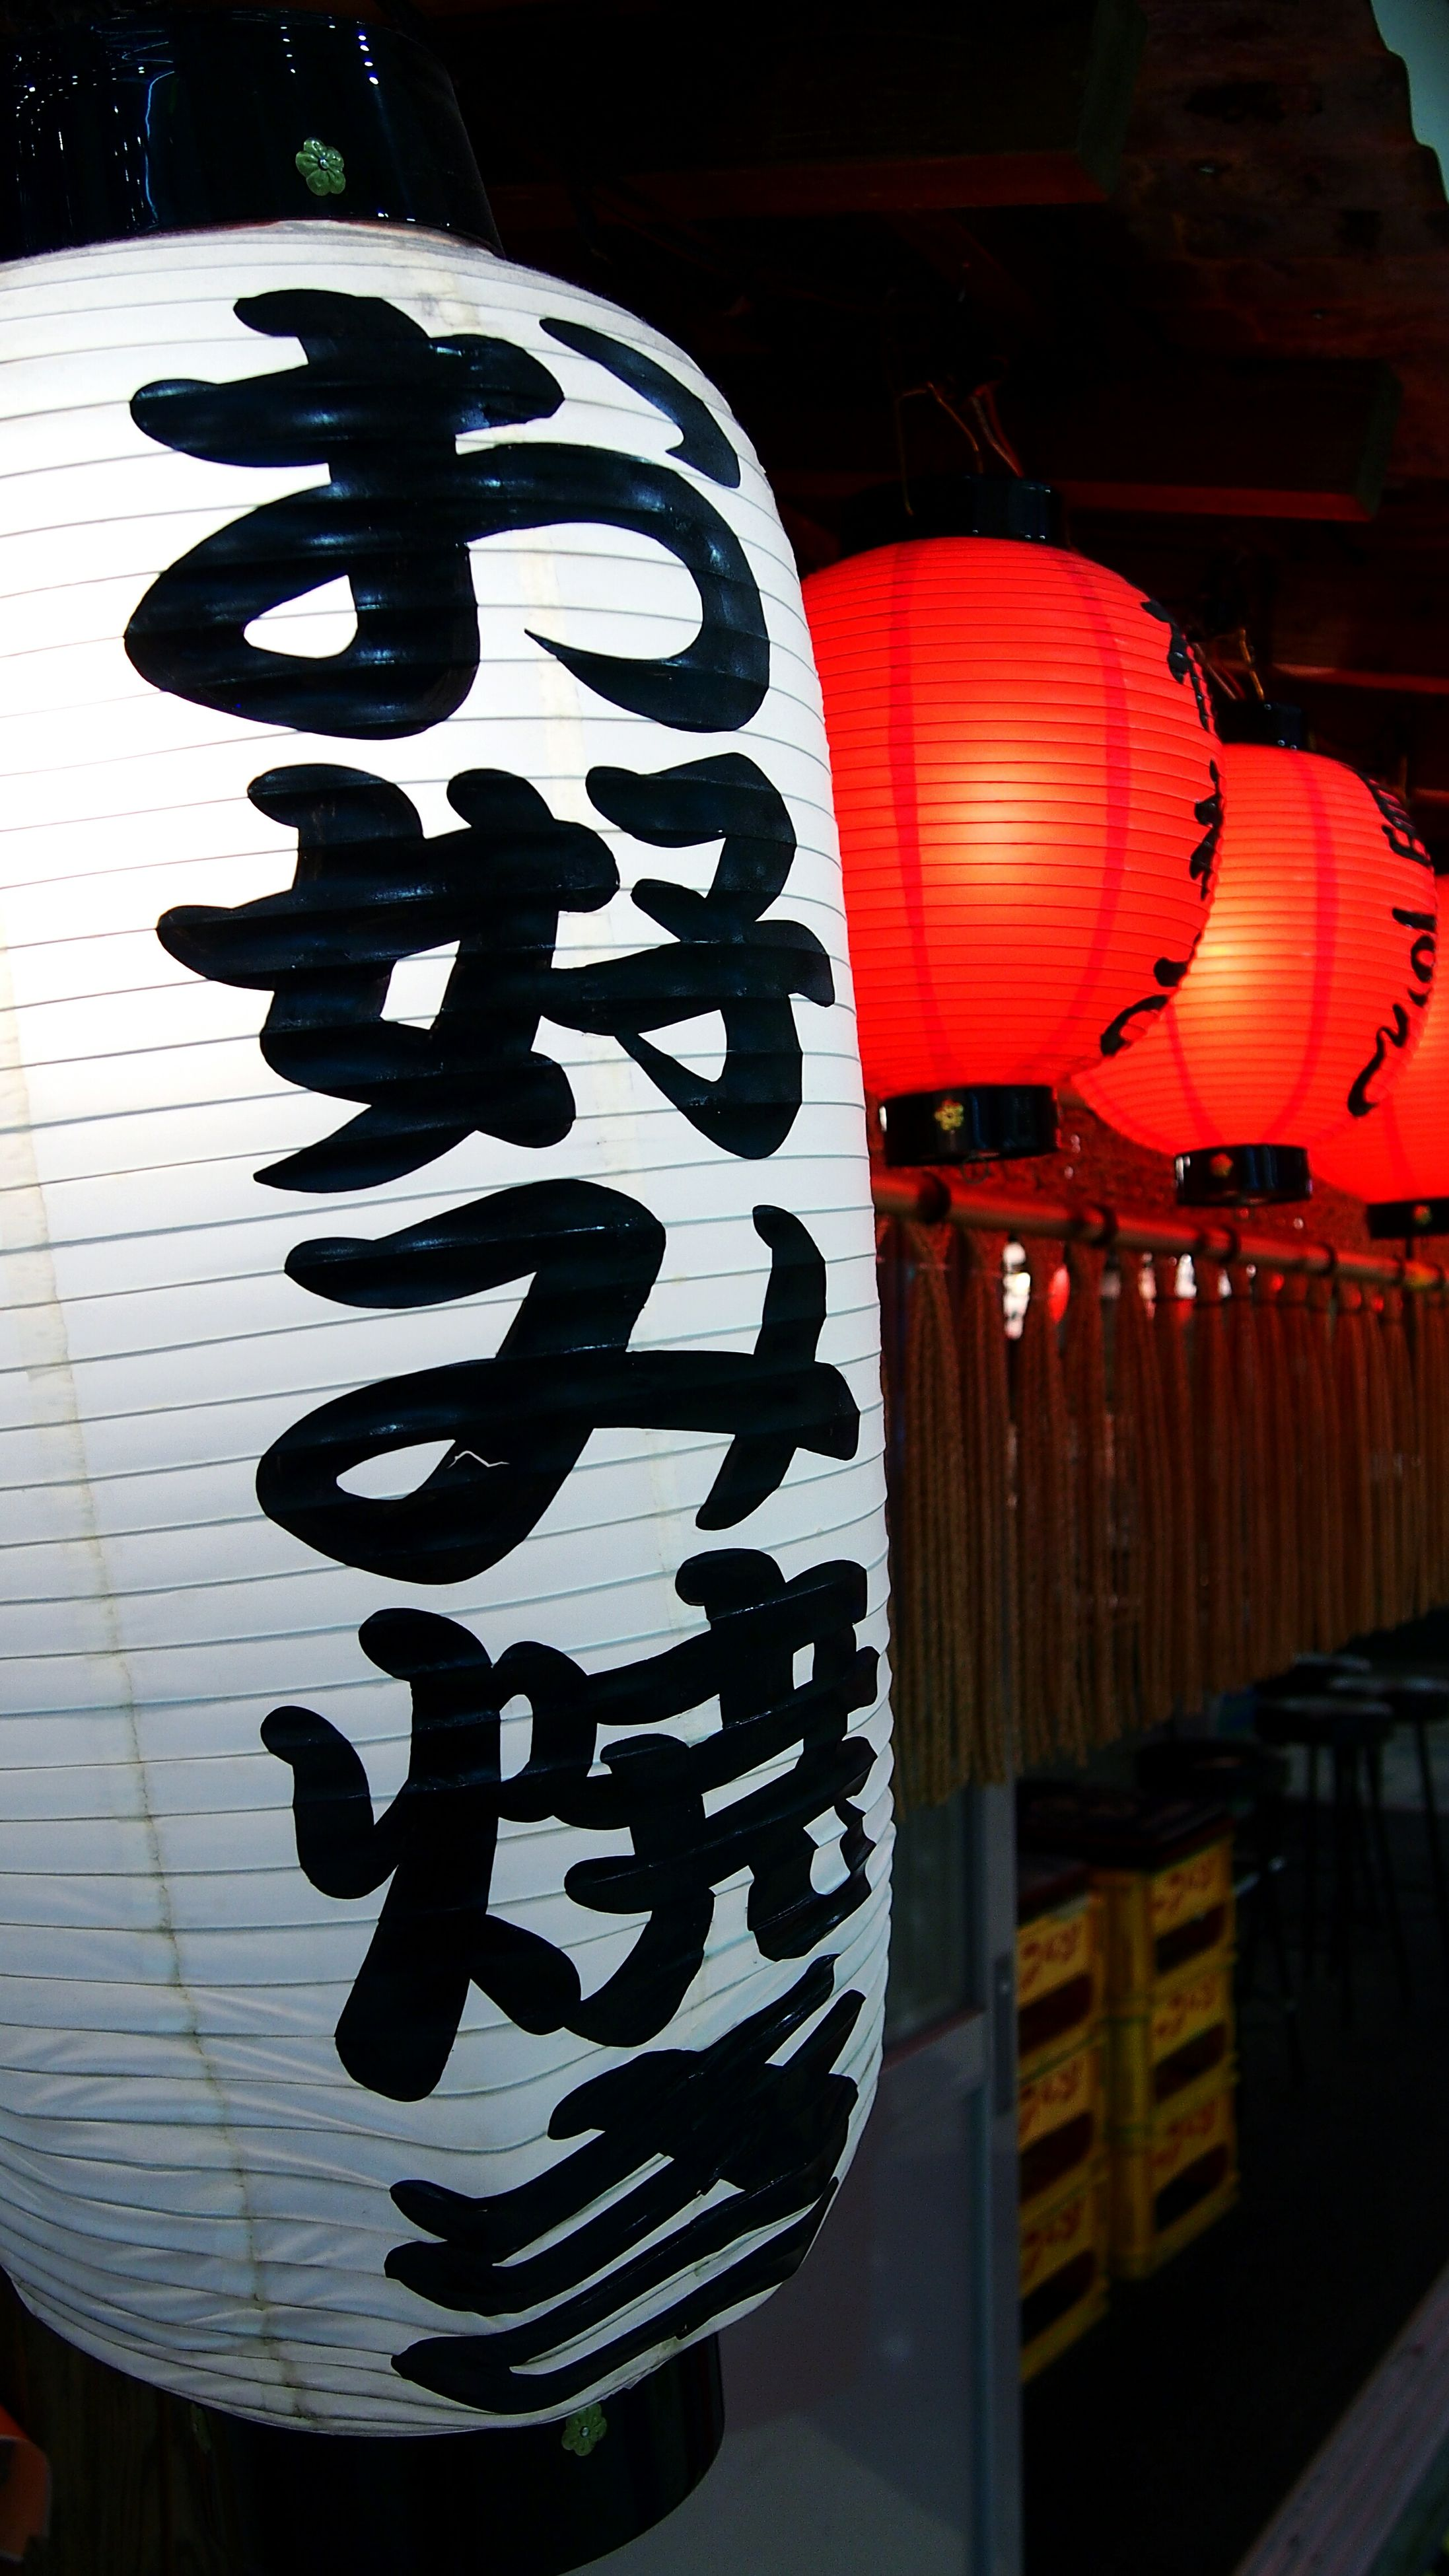 art and craft, pattern, illuminated, art, no people, indoors, creativity, design, absence, in a row, tradition, decoration, night, built structure, hanging, red, lantern, building exterior, empty